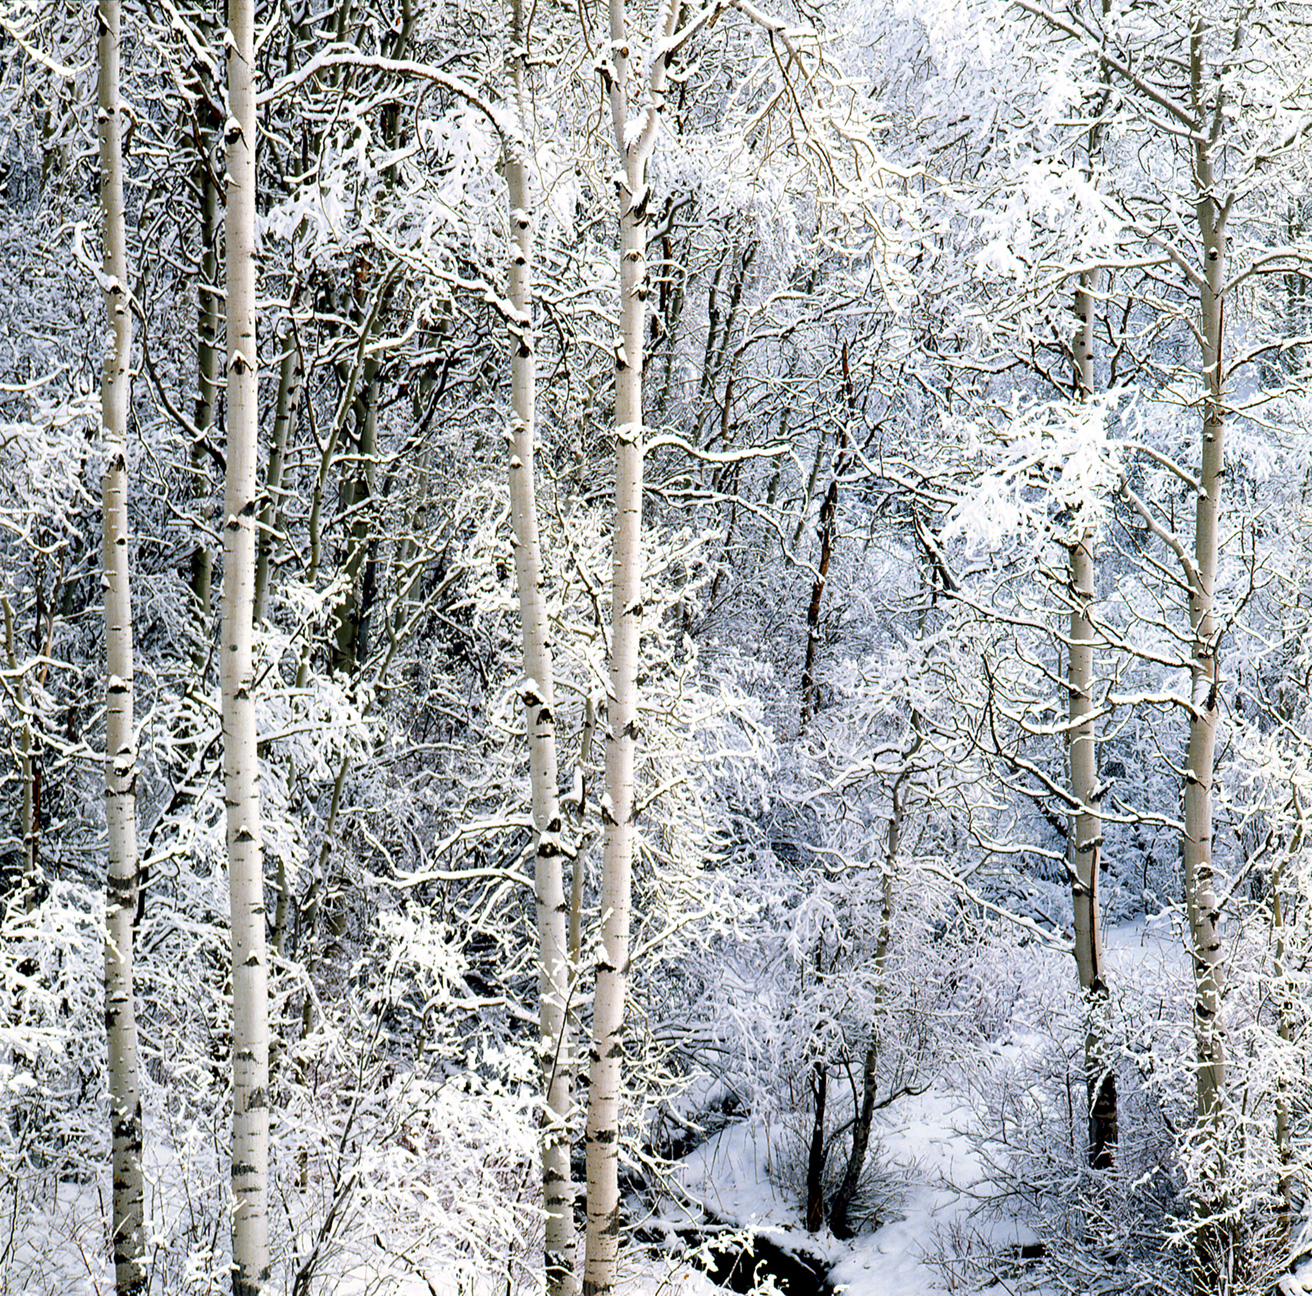 Aspens-in-Snow